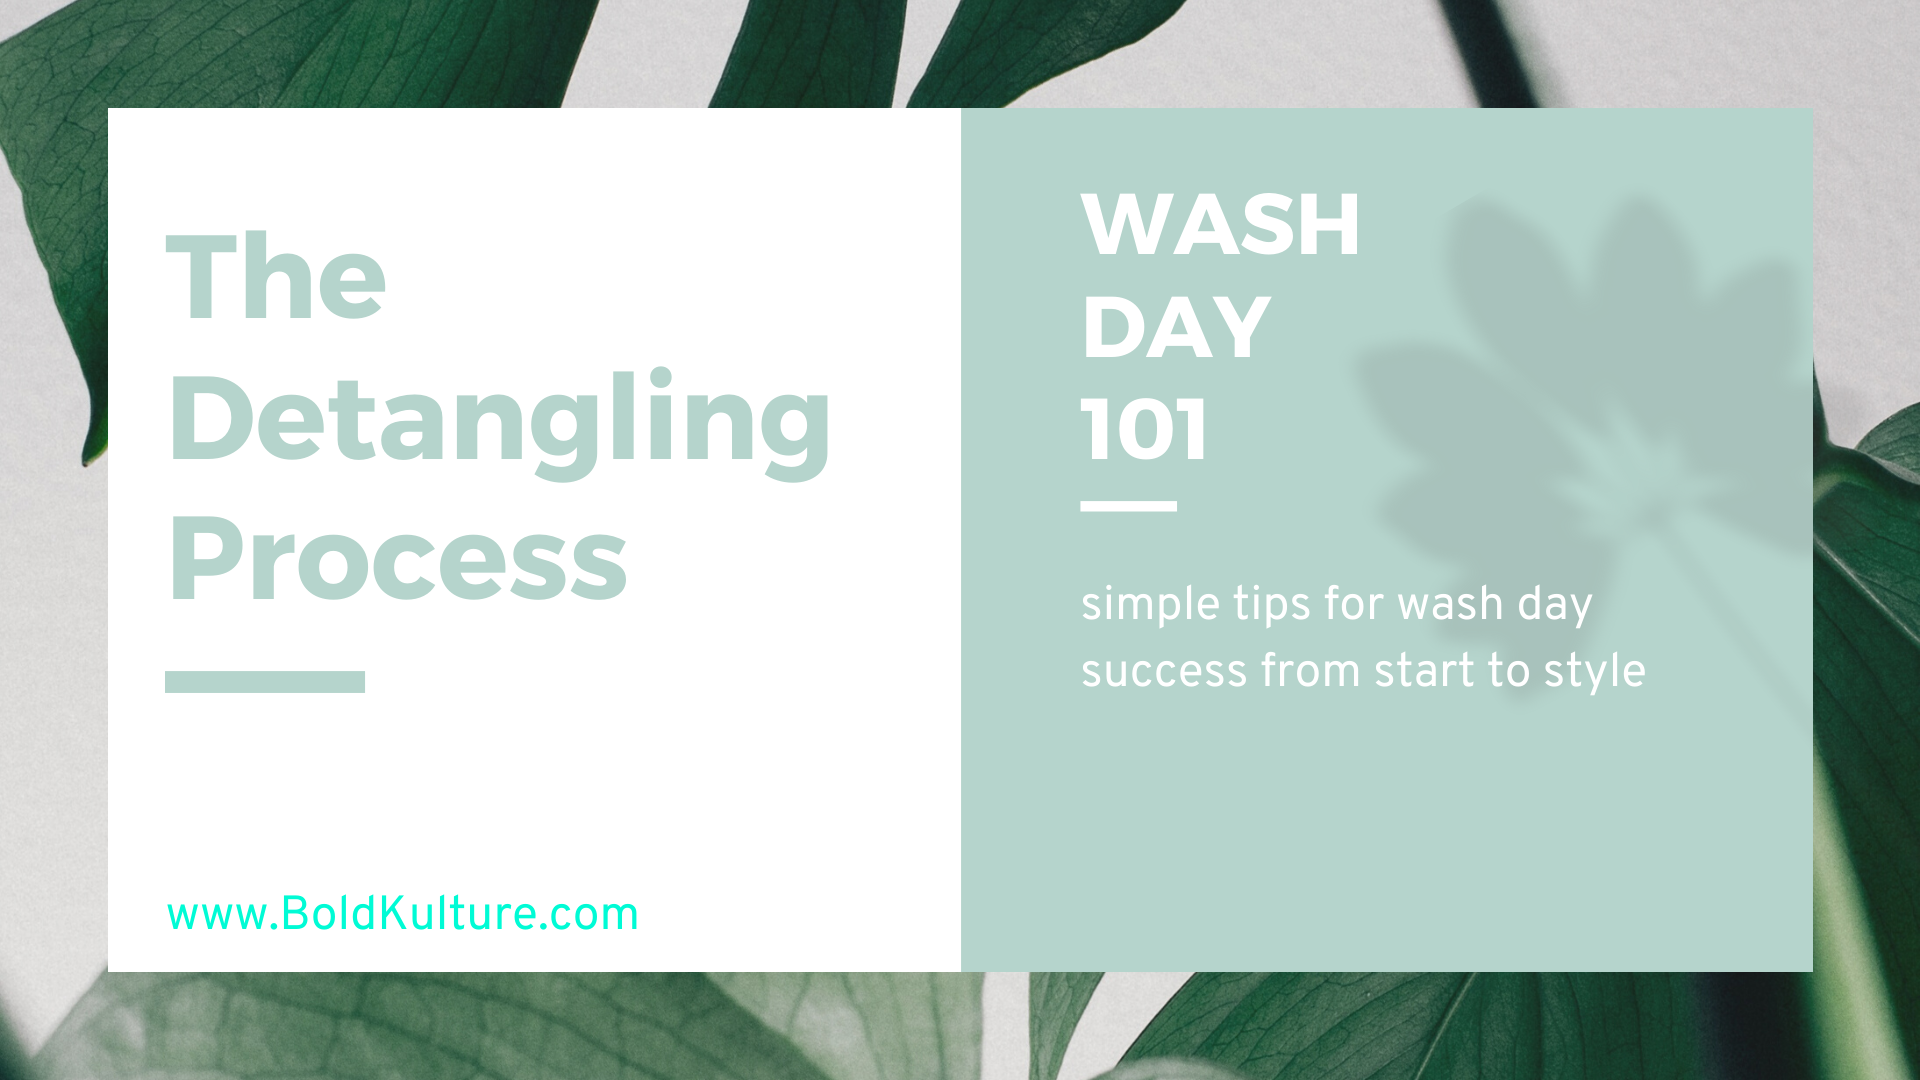 Wash Day 101 The Detangling Process